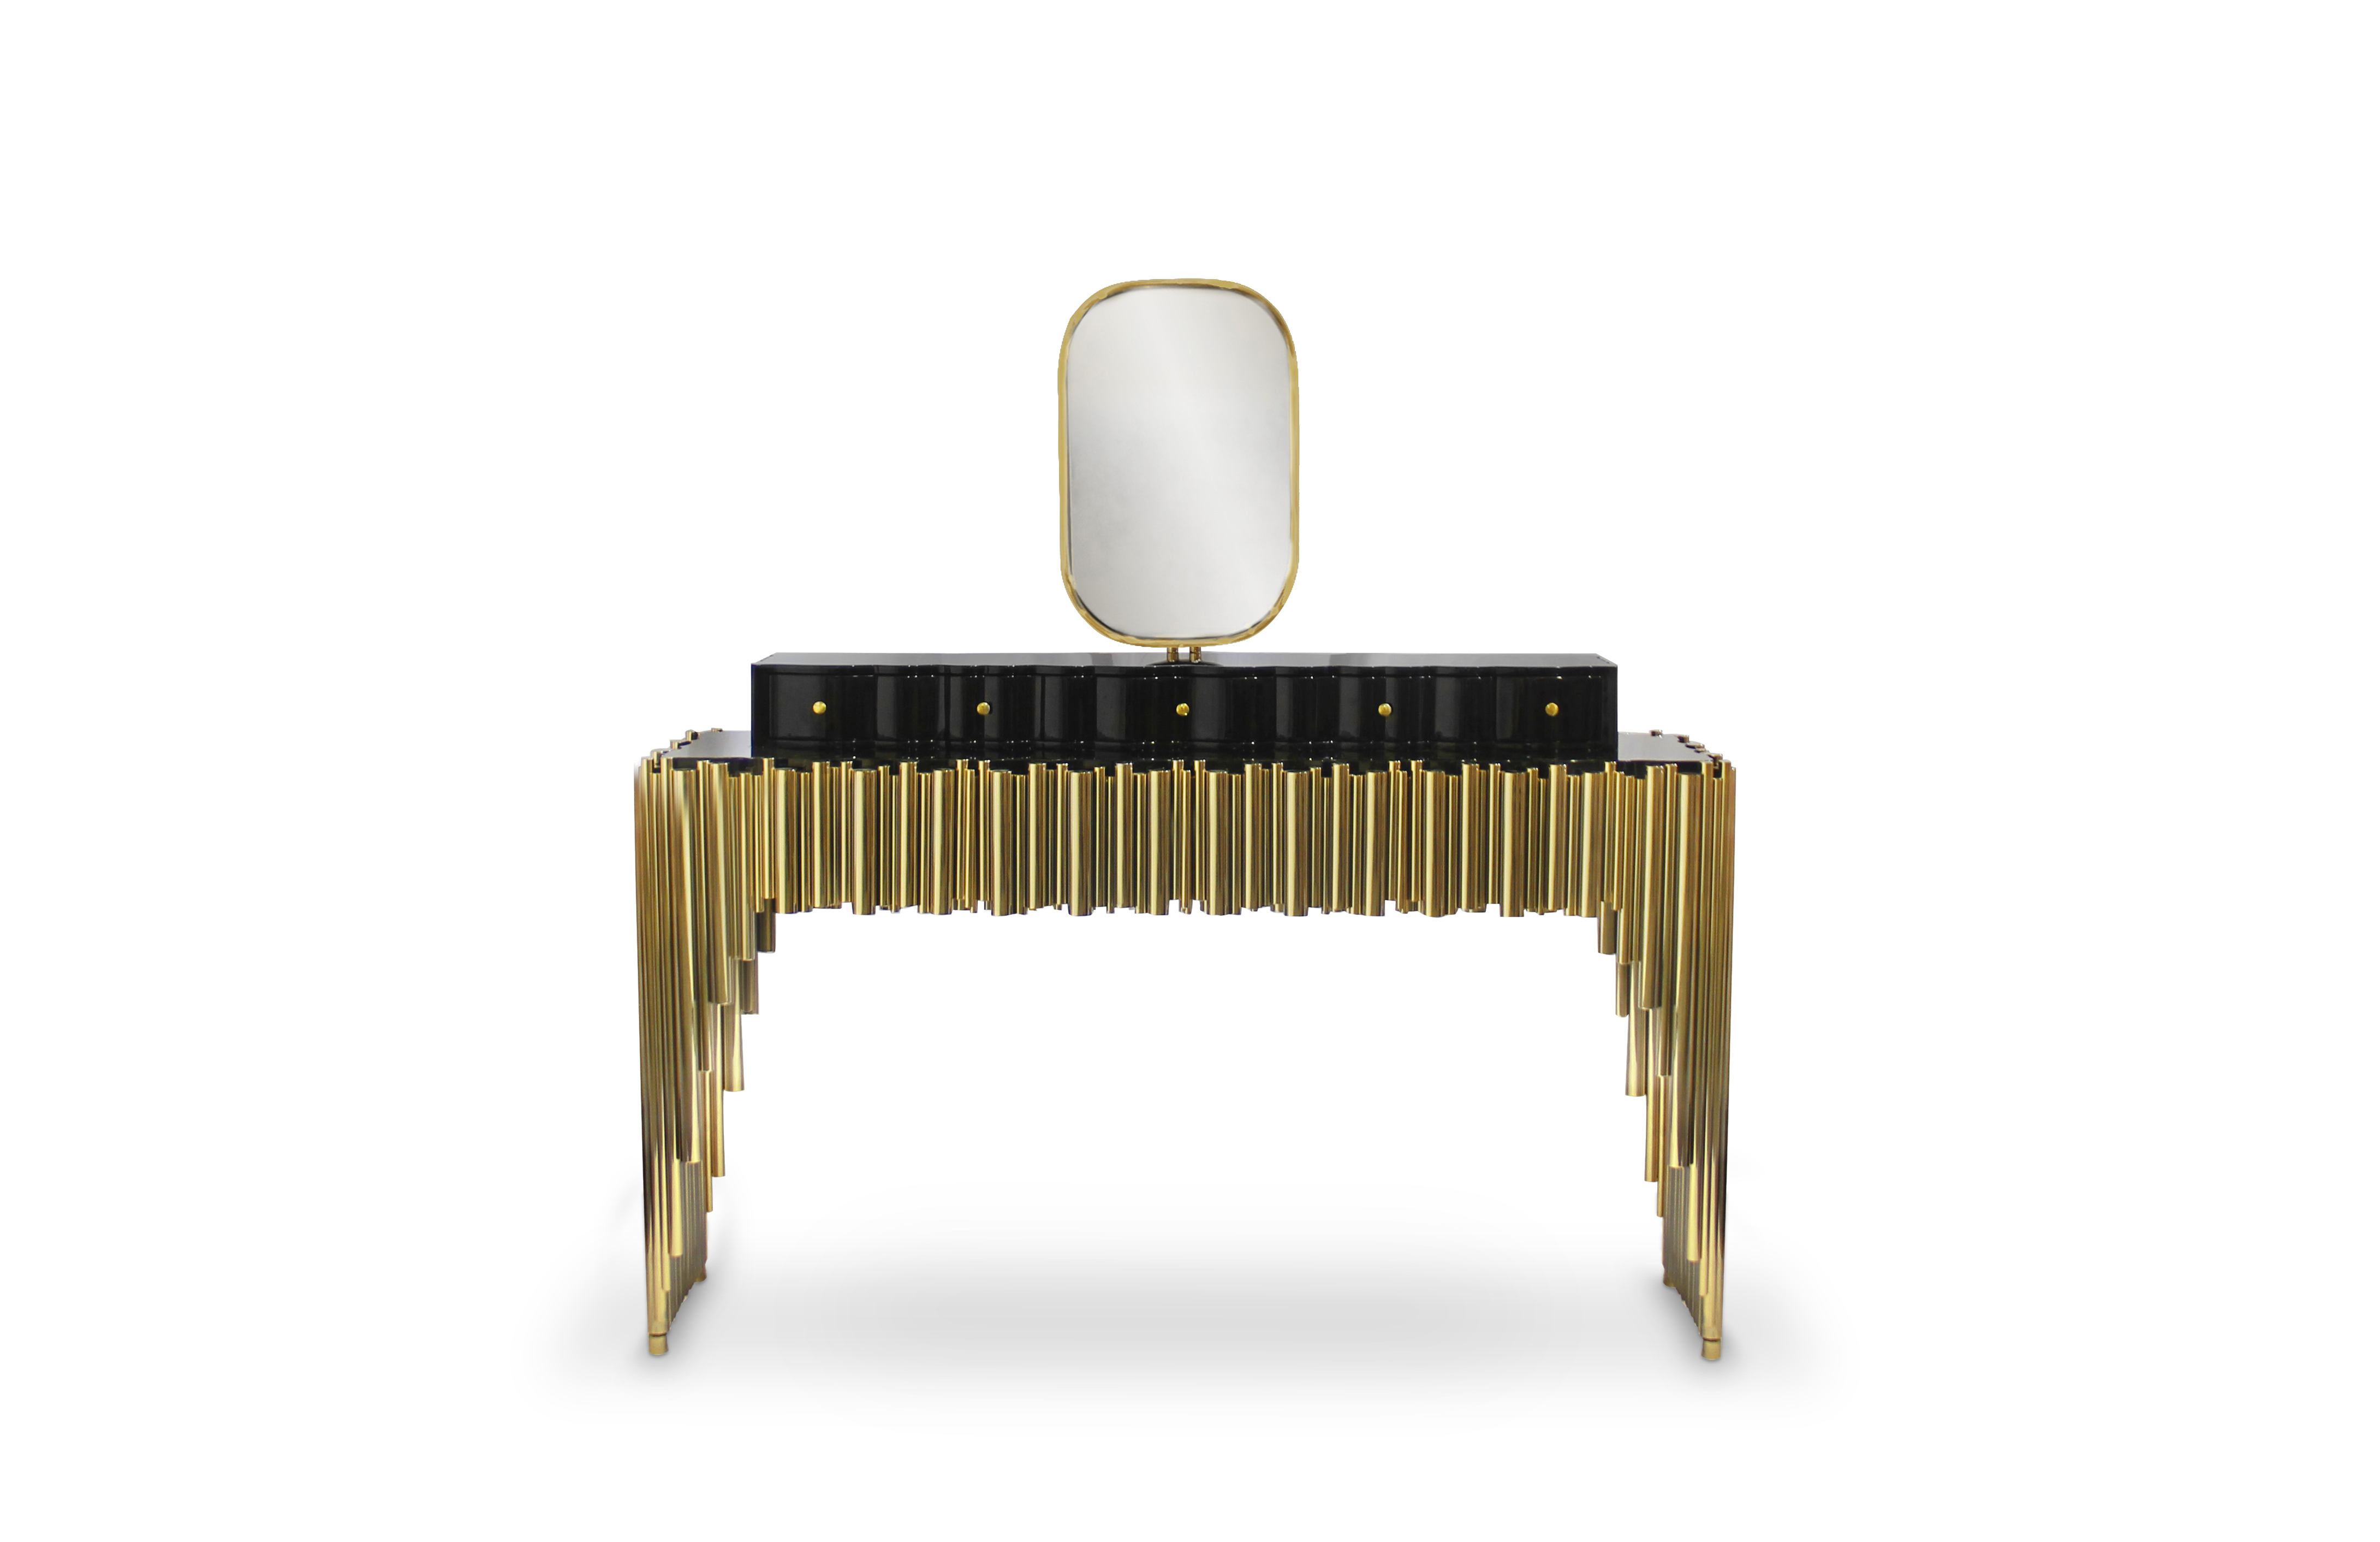 The Best Maison Valentina Products for a Luxurious Bathroom Feeling luxurious bathroom feeling The Best Maison Valentina Products for a Luxurious Bathroom Feeling symphony dressing table 1 HR